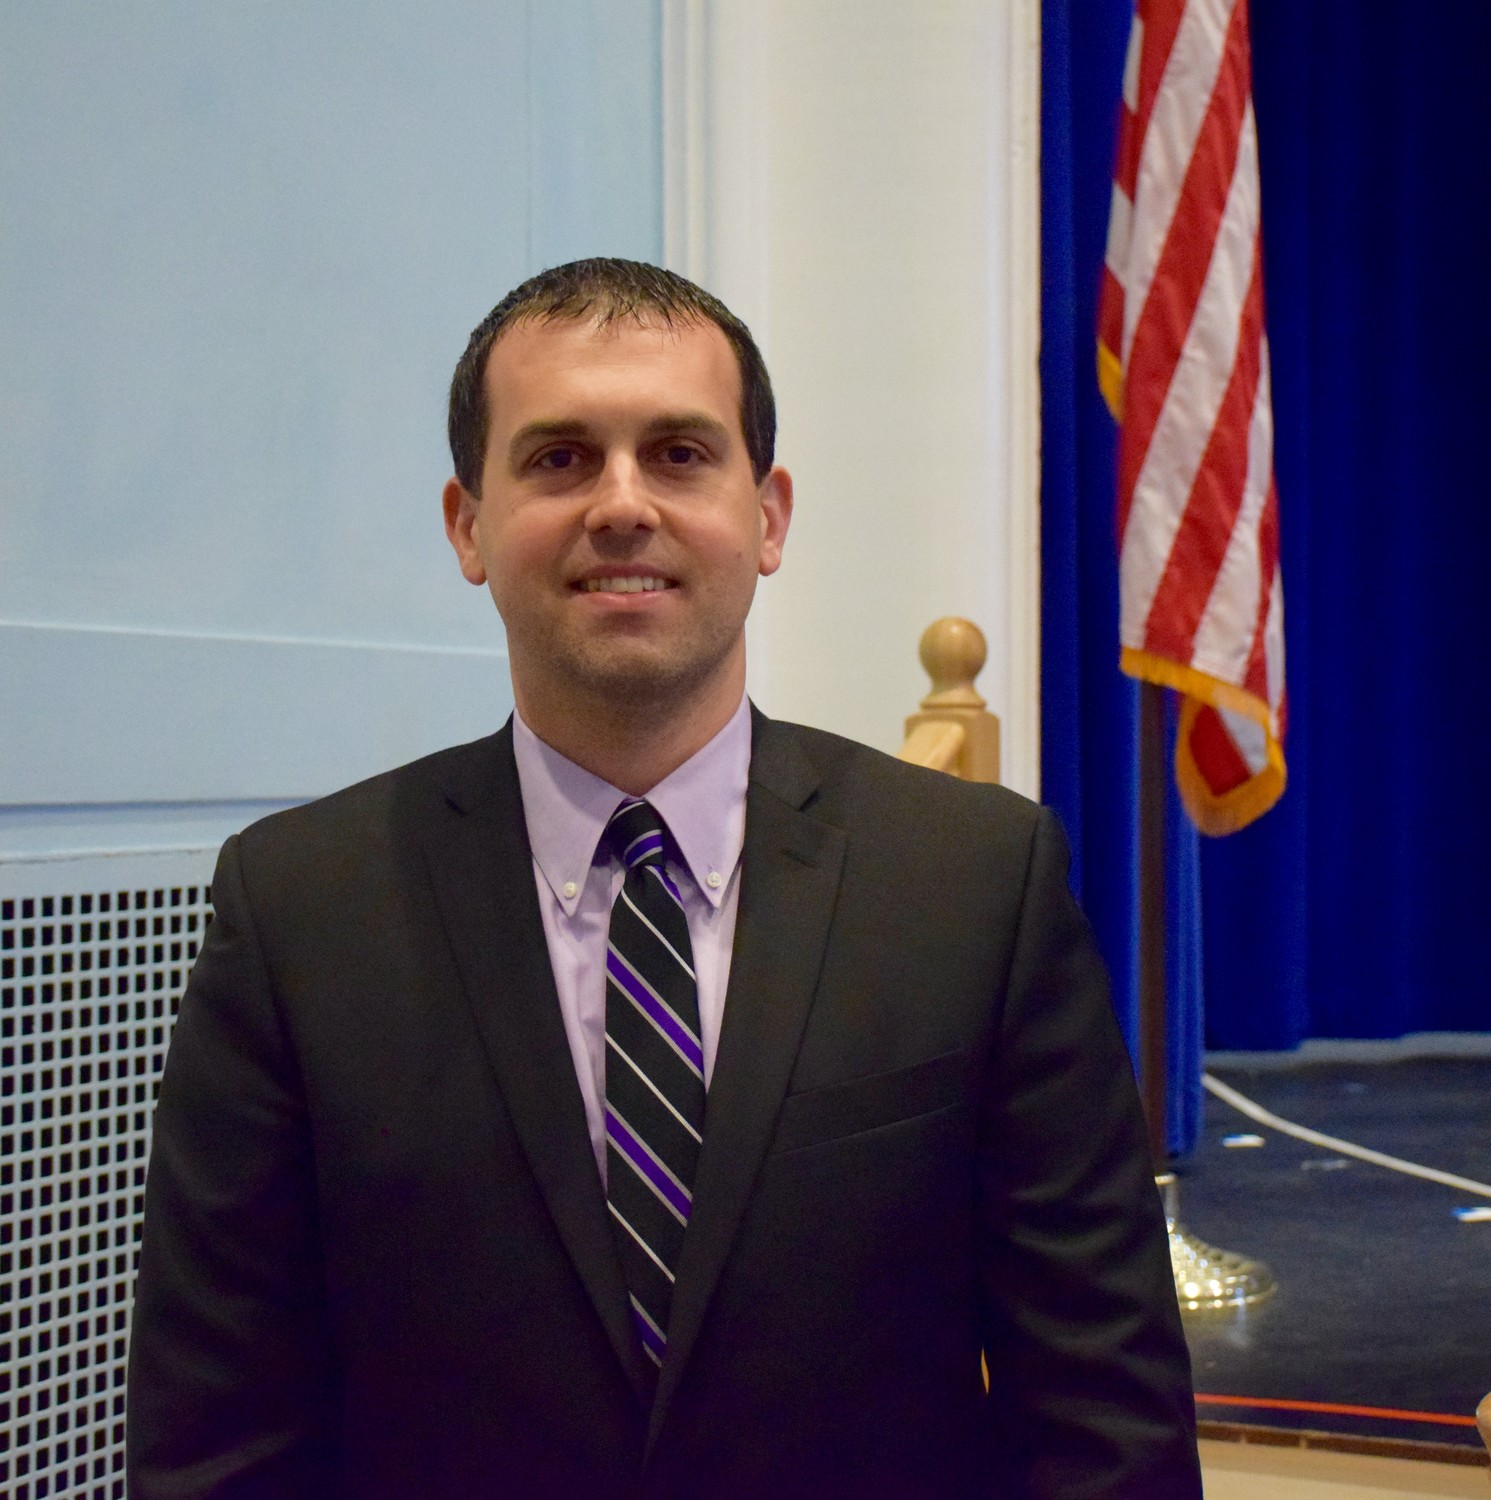 Richard Schaffer, 39,  was recently appointed principal of East Rockaway Junior-Senior High School. He will begin on July 1.